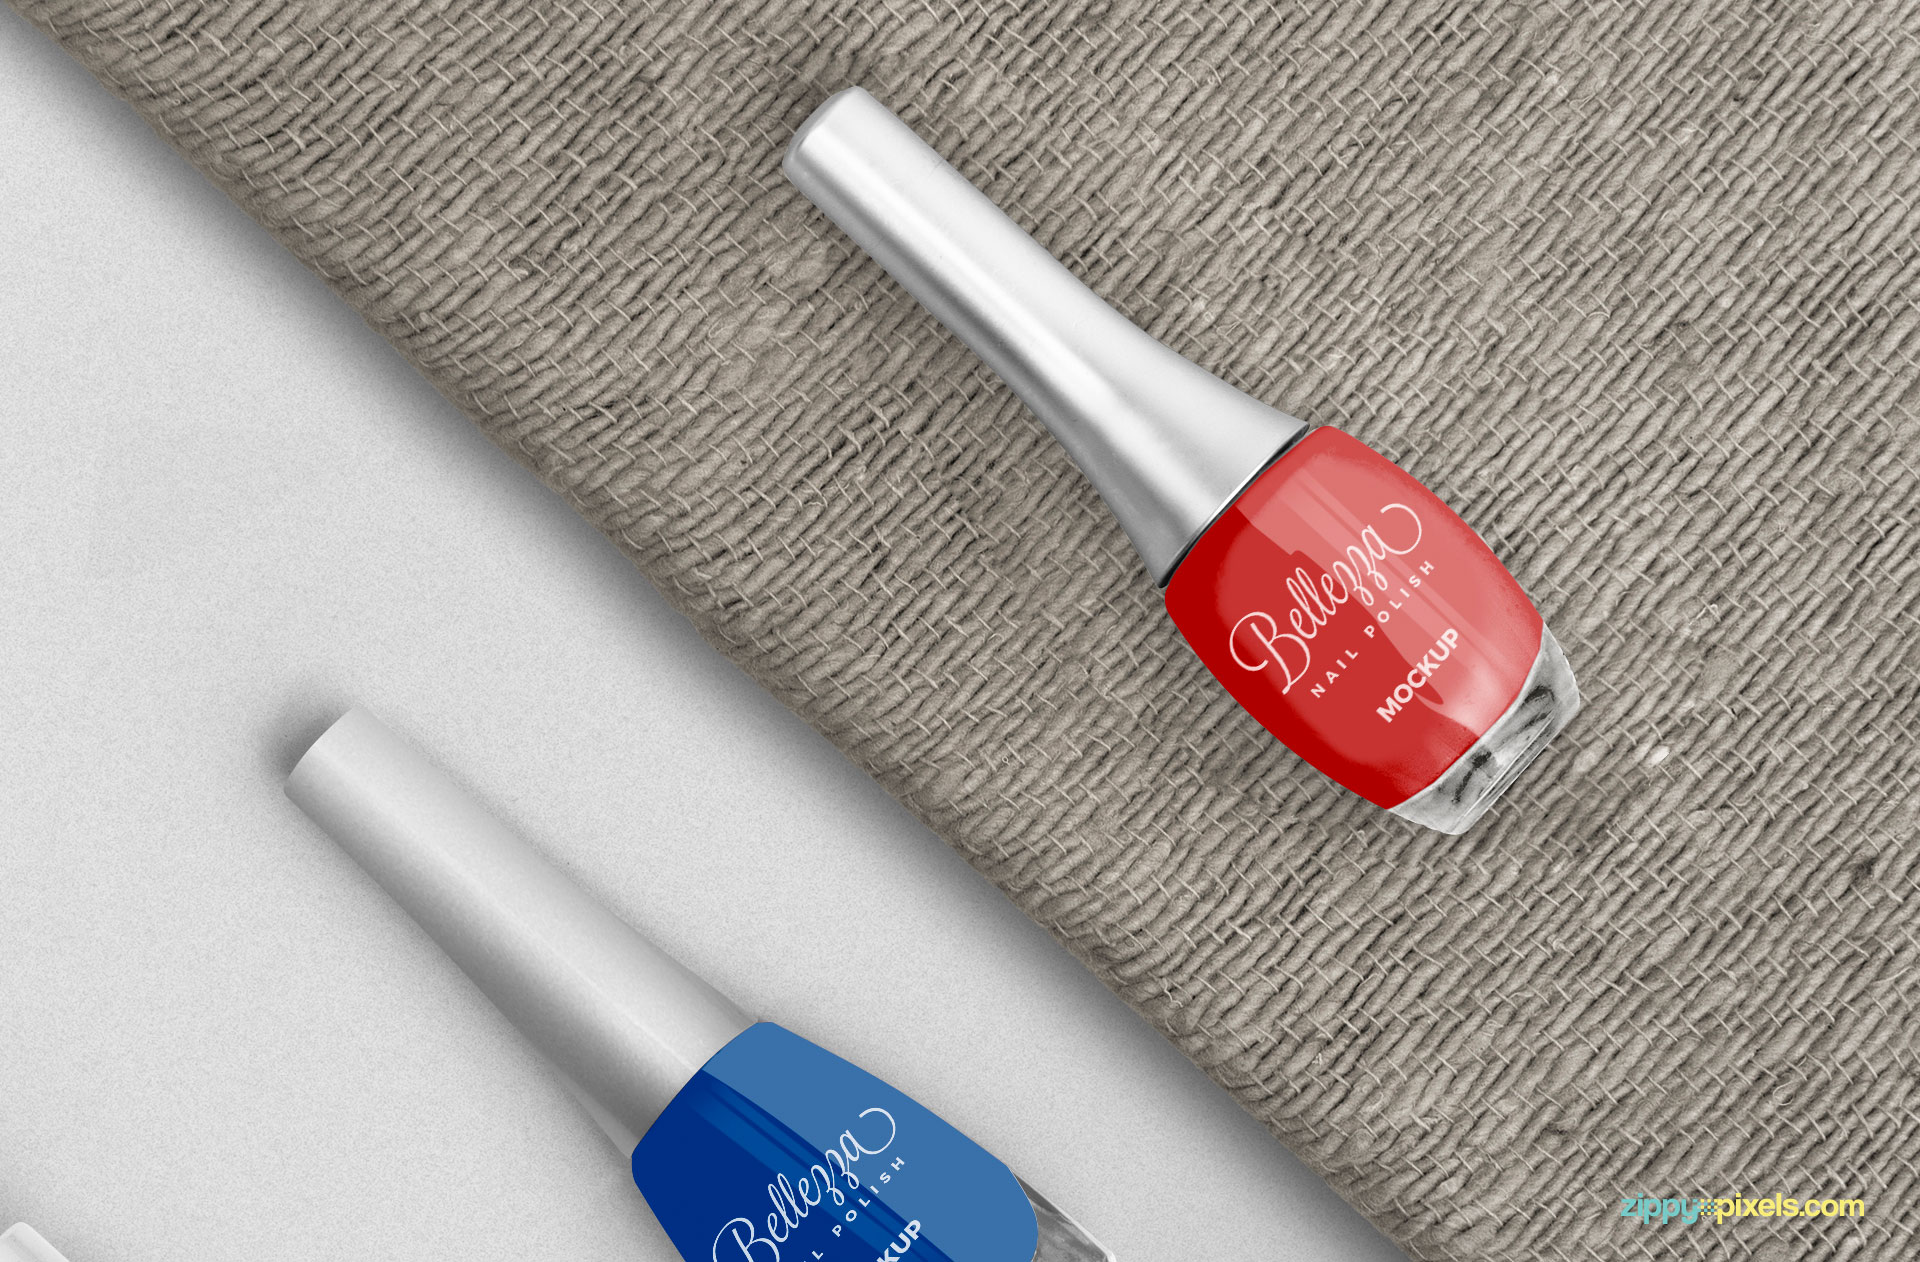 Change the color of the nail polish and cap of the bottle.